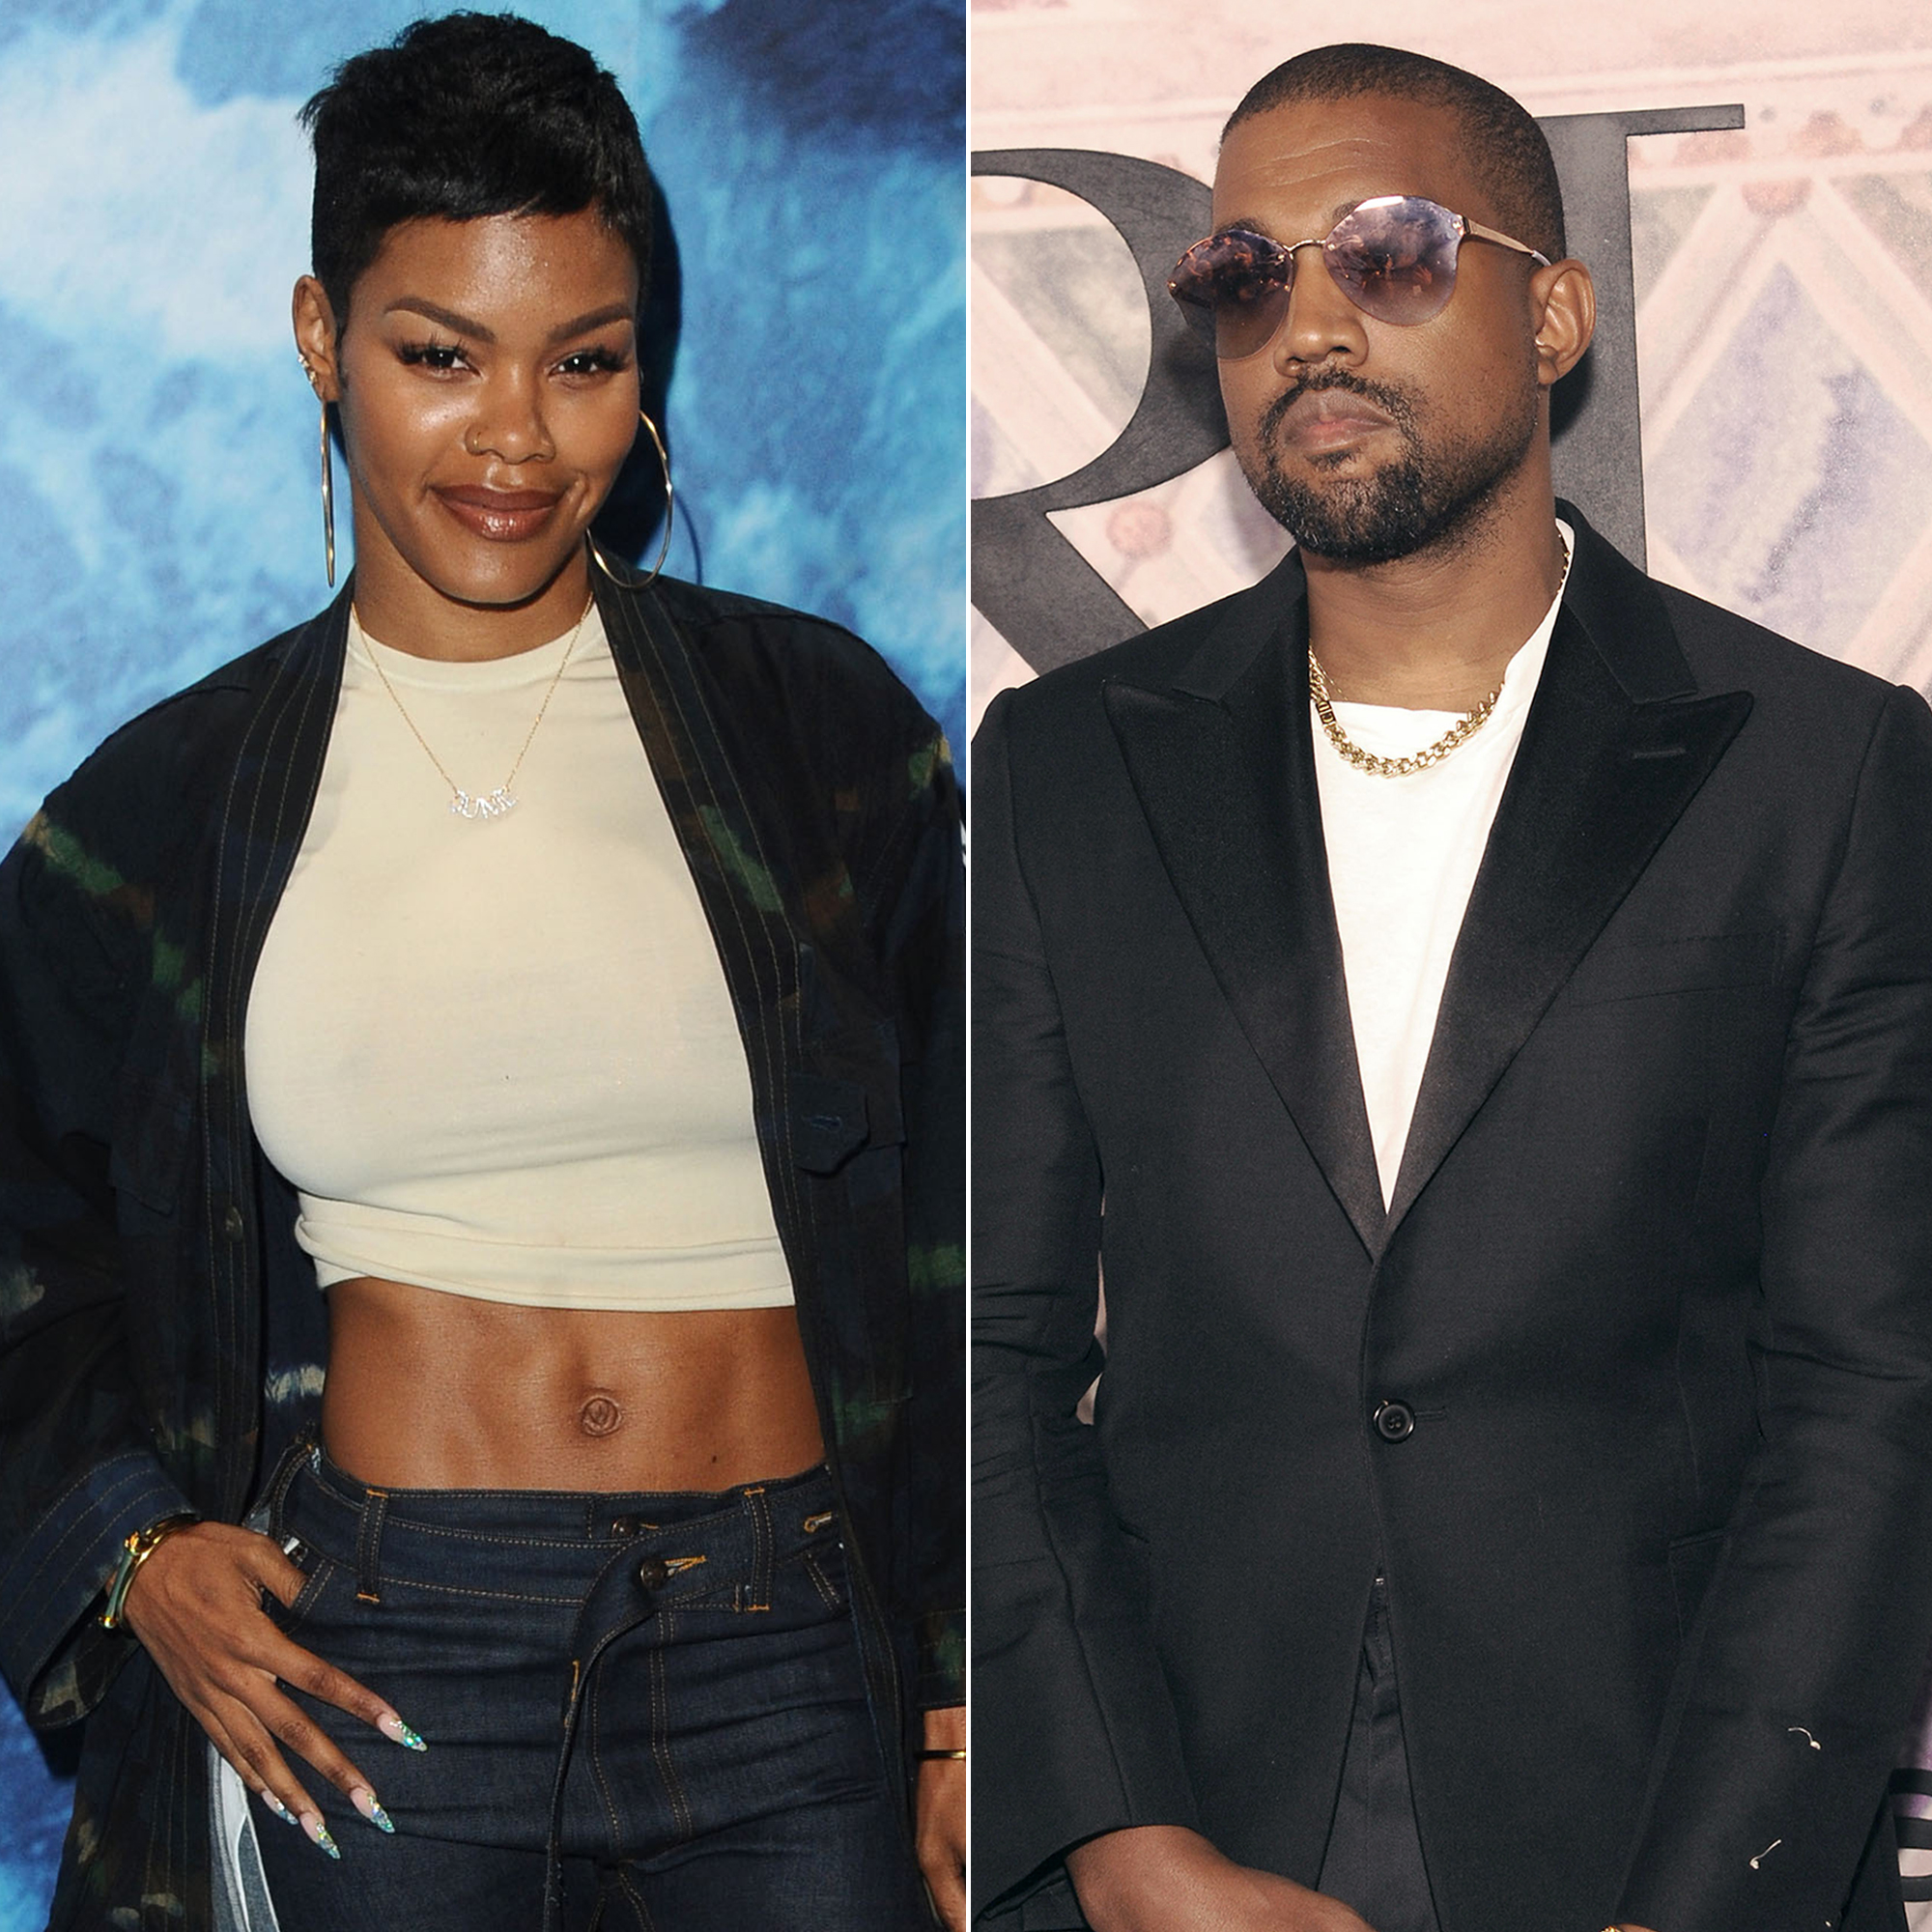 Teyana Taylor Raves About What Makes Kanye West a 'Great Father' - Teyana Taylor and Kanye West.